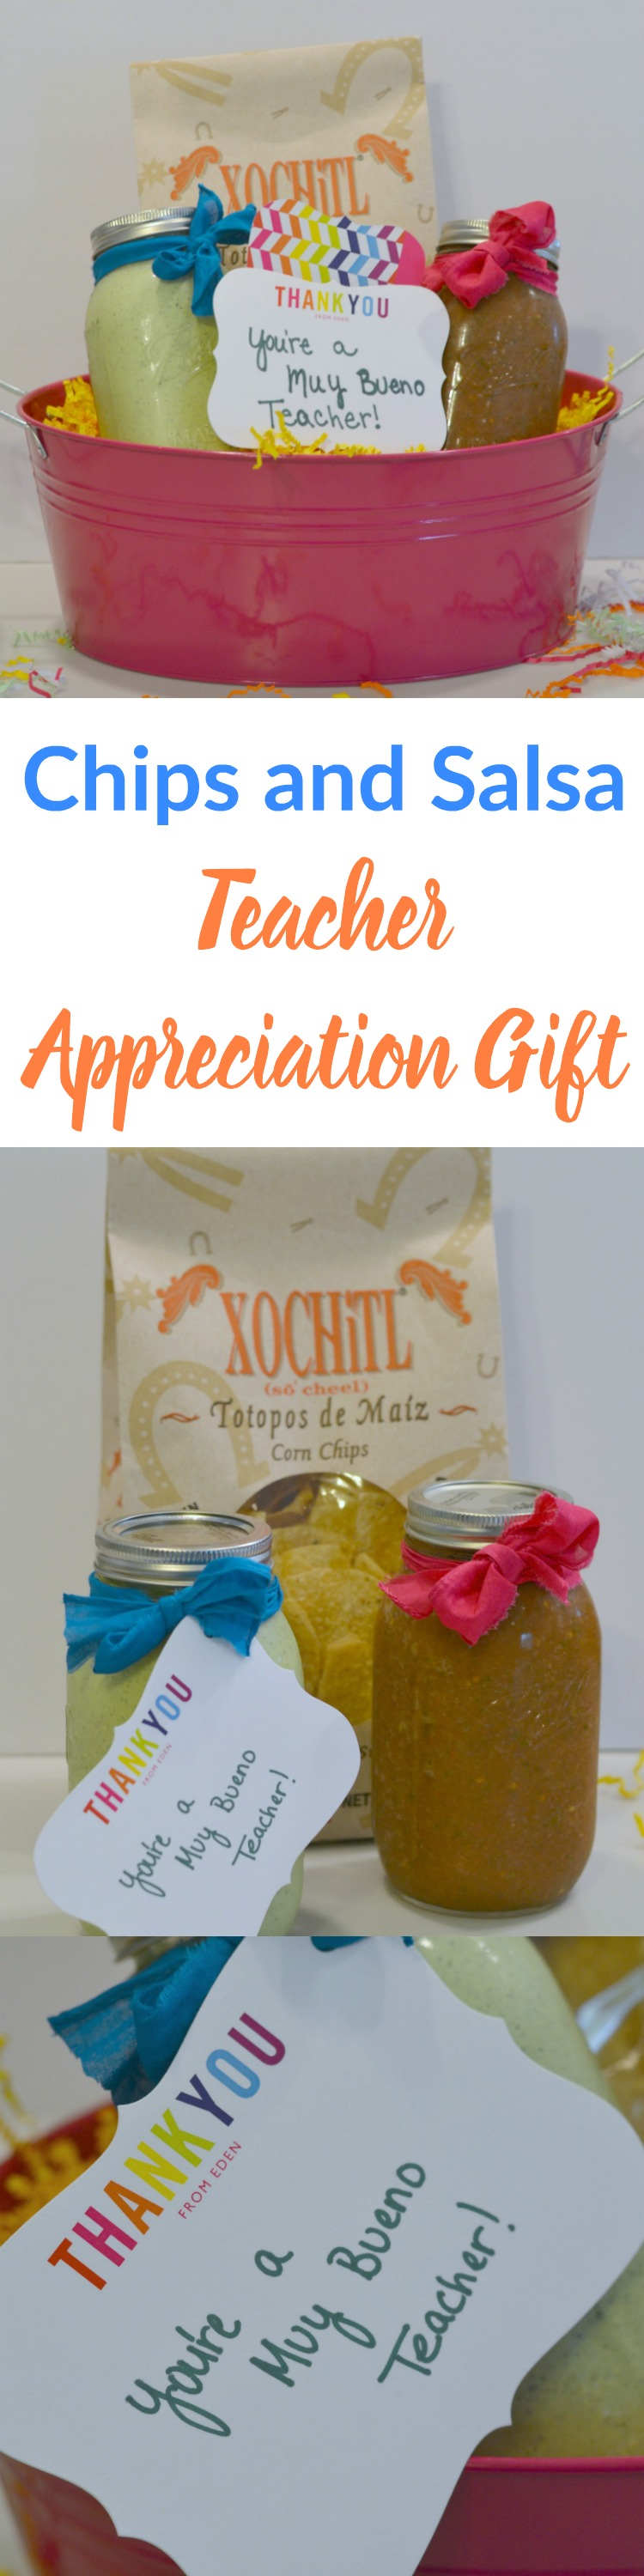 Chips and Salsa Teacher Appreciation Gift- Pinterest